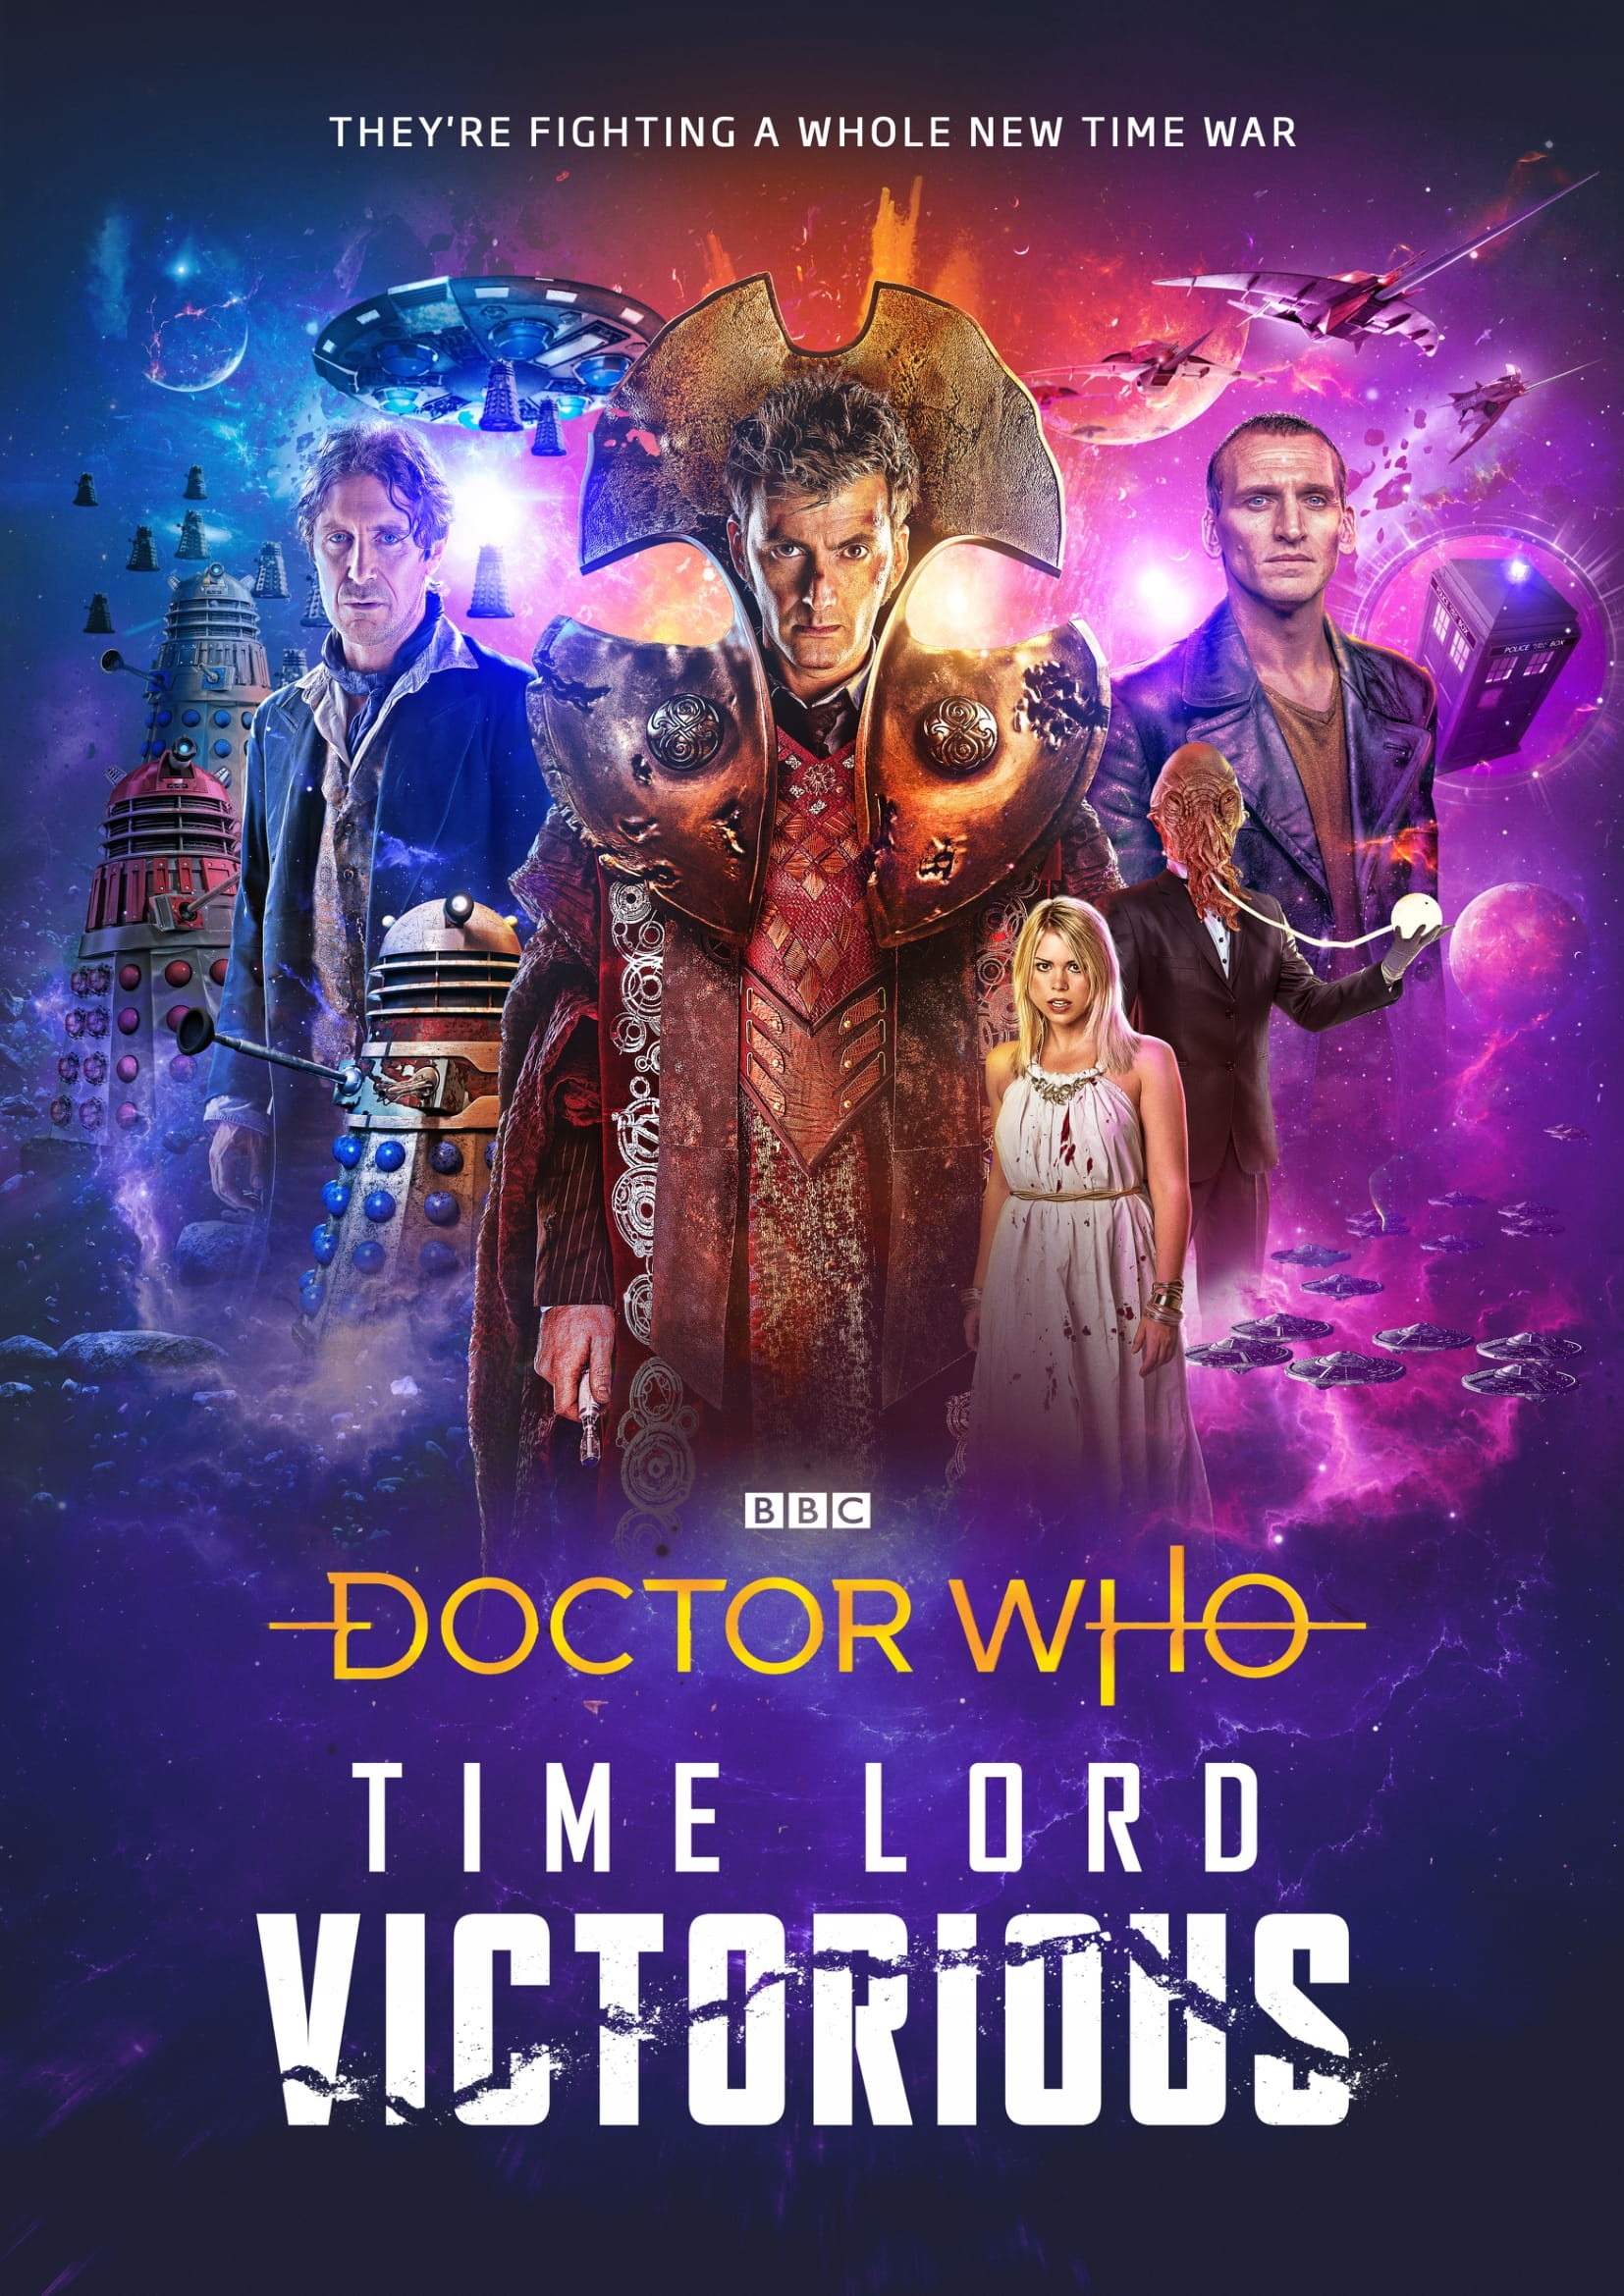 Your Complete Guide: Everything You Need to Know About the Doctor Who Event, Time Lord Victorious